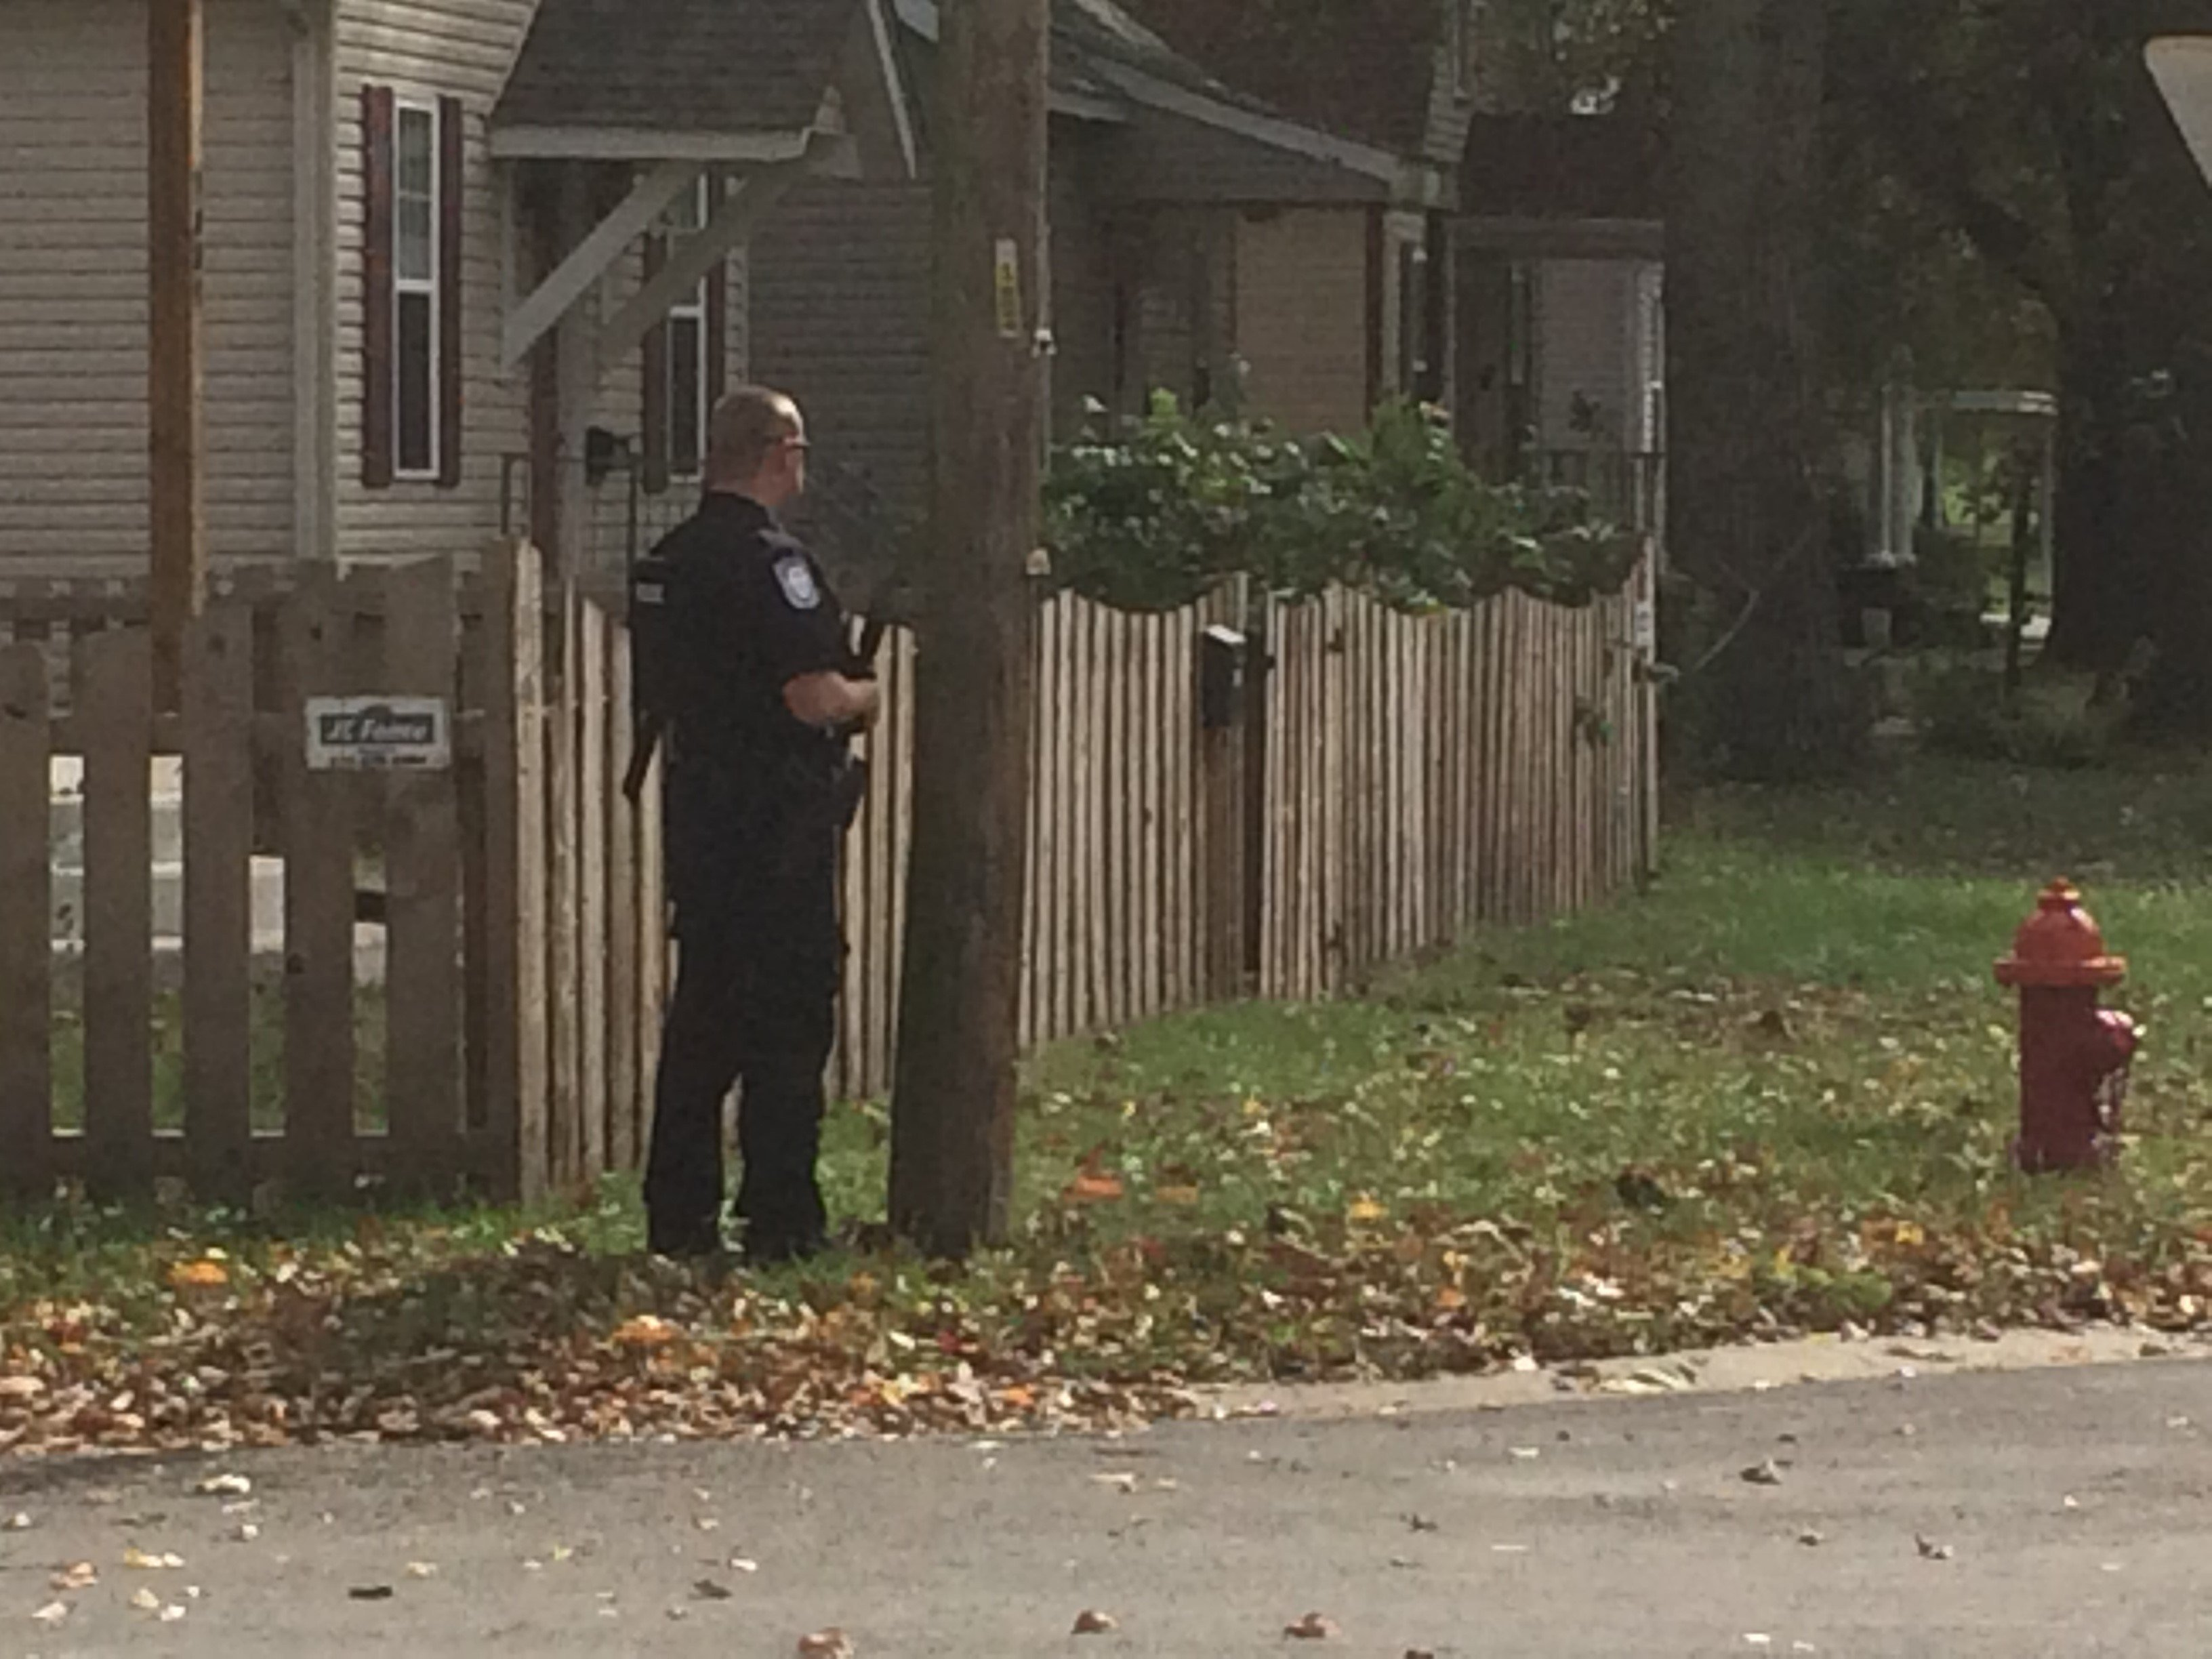 An officer outside a home in Highland Tuesday (Credit: Bryce Moore)